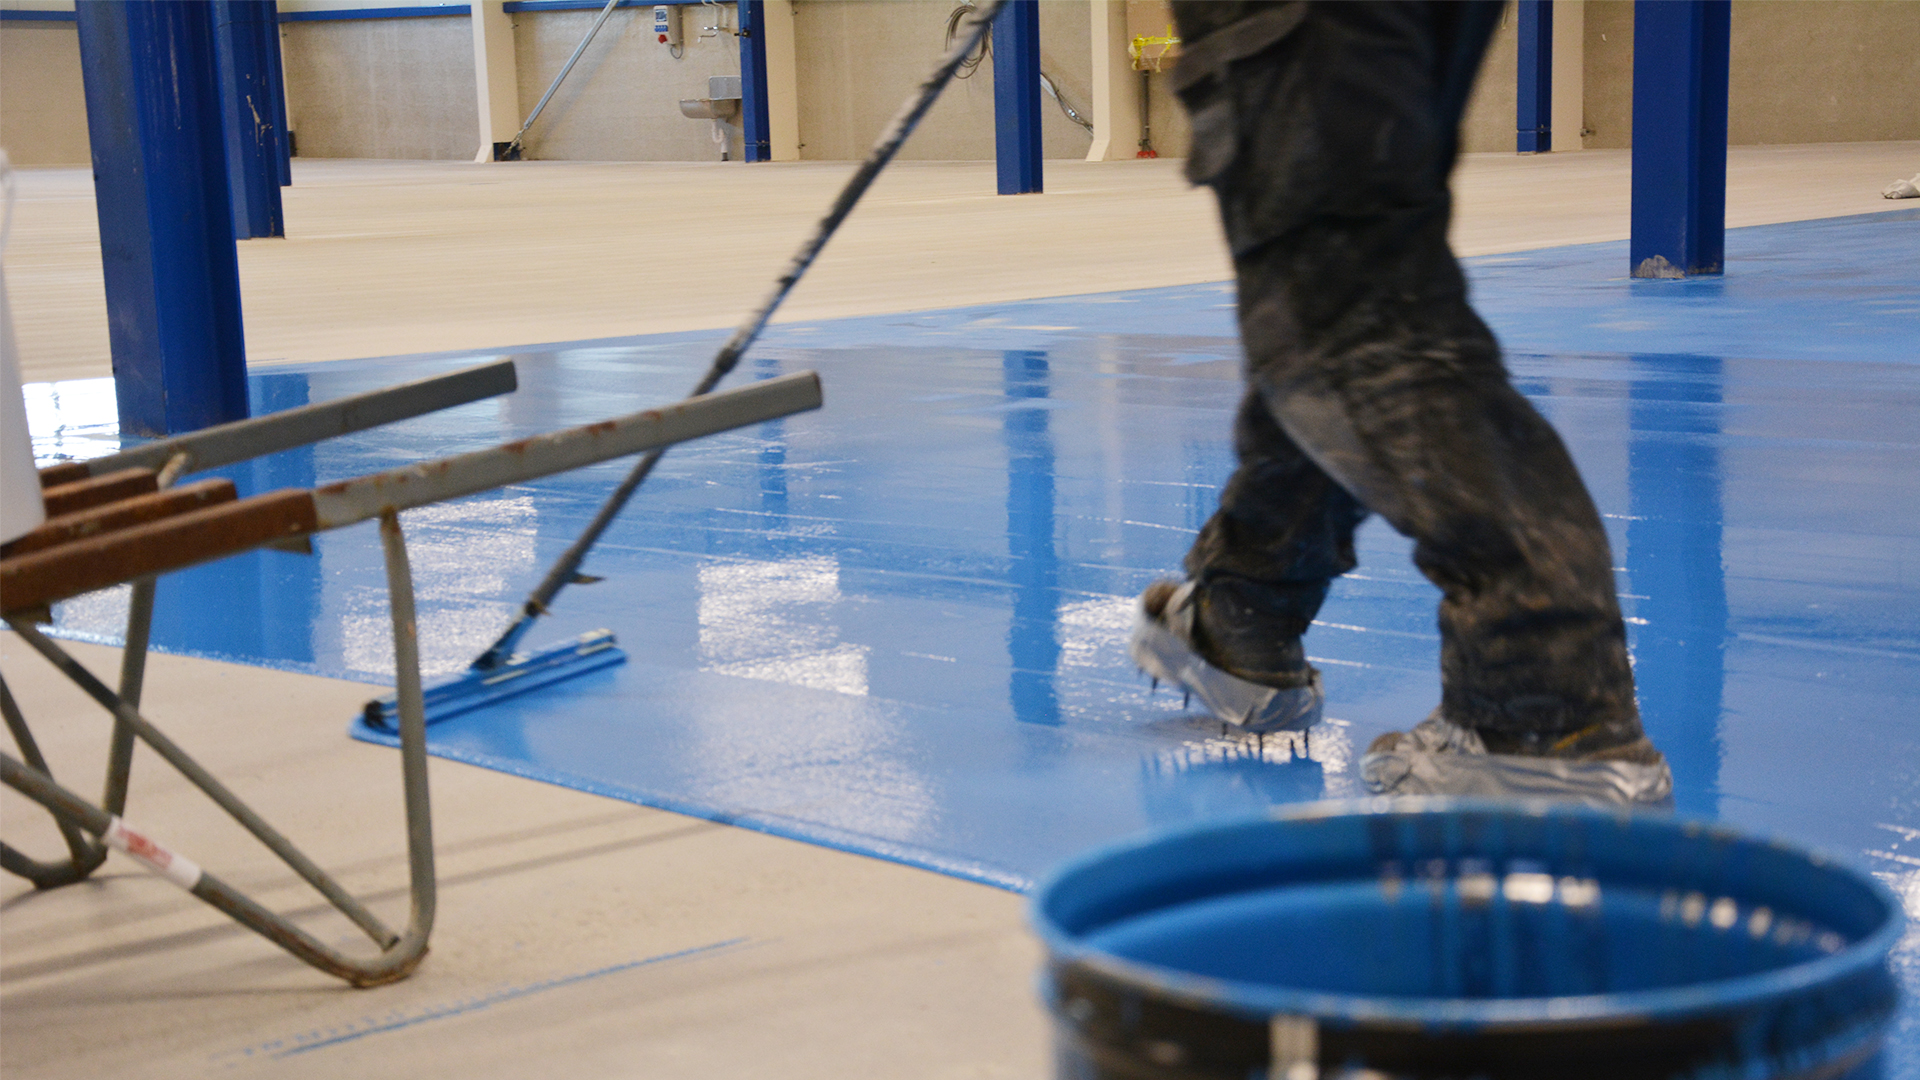 epoxy coating aanbrengen